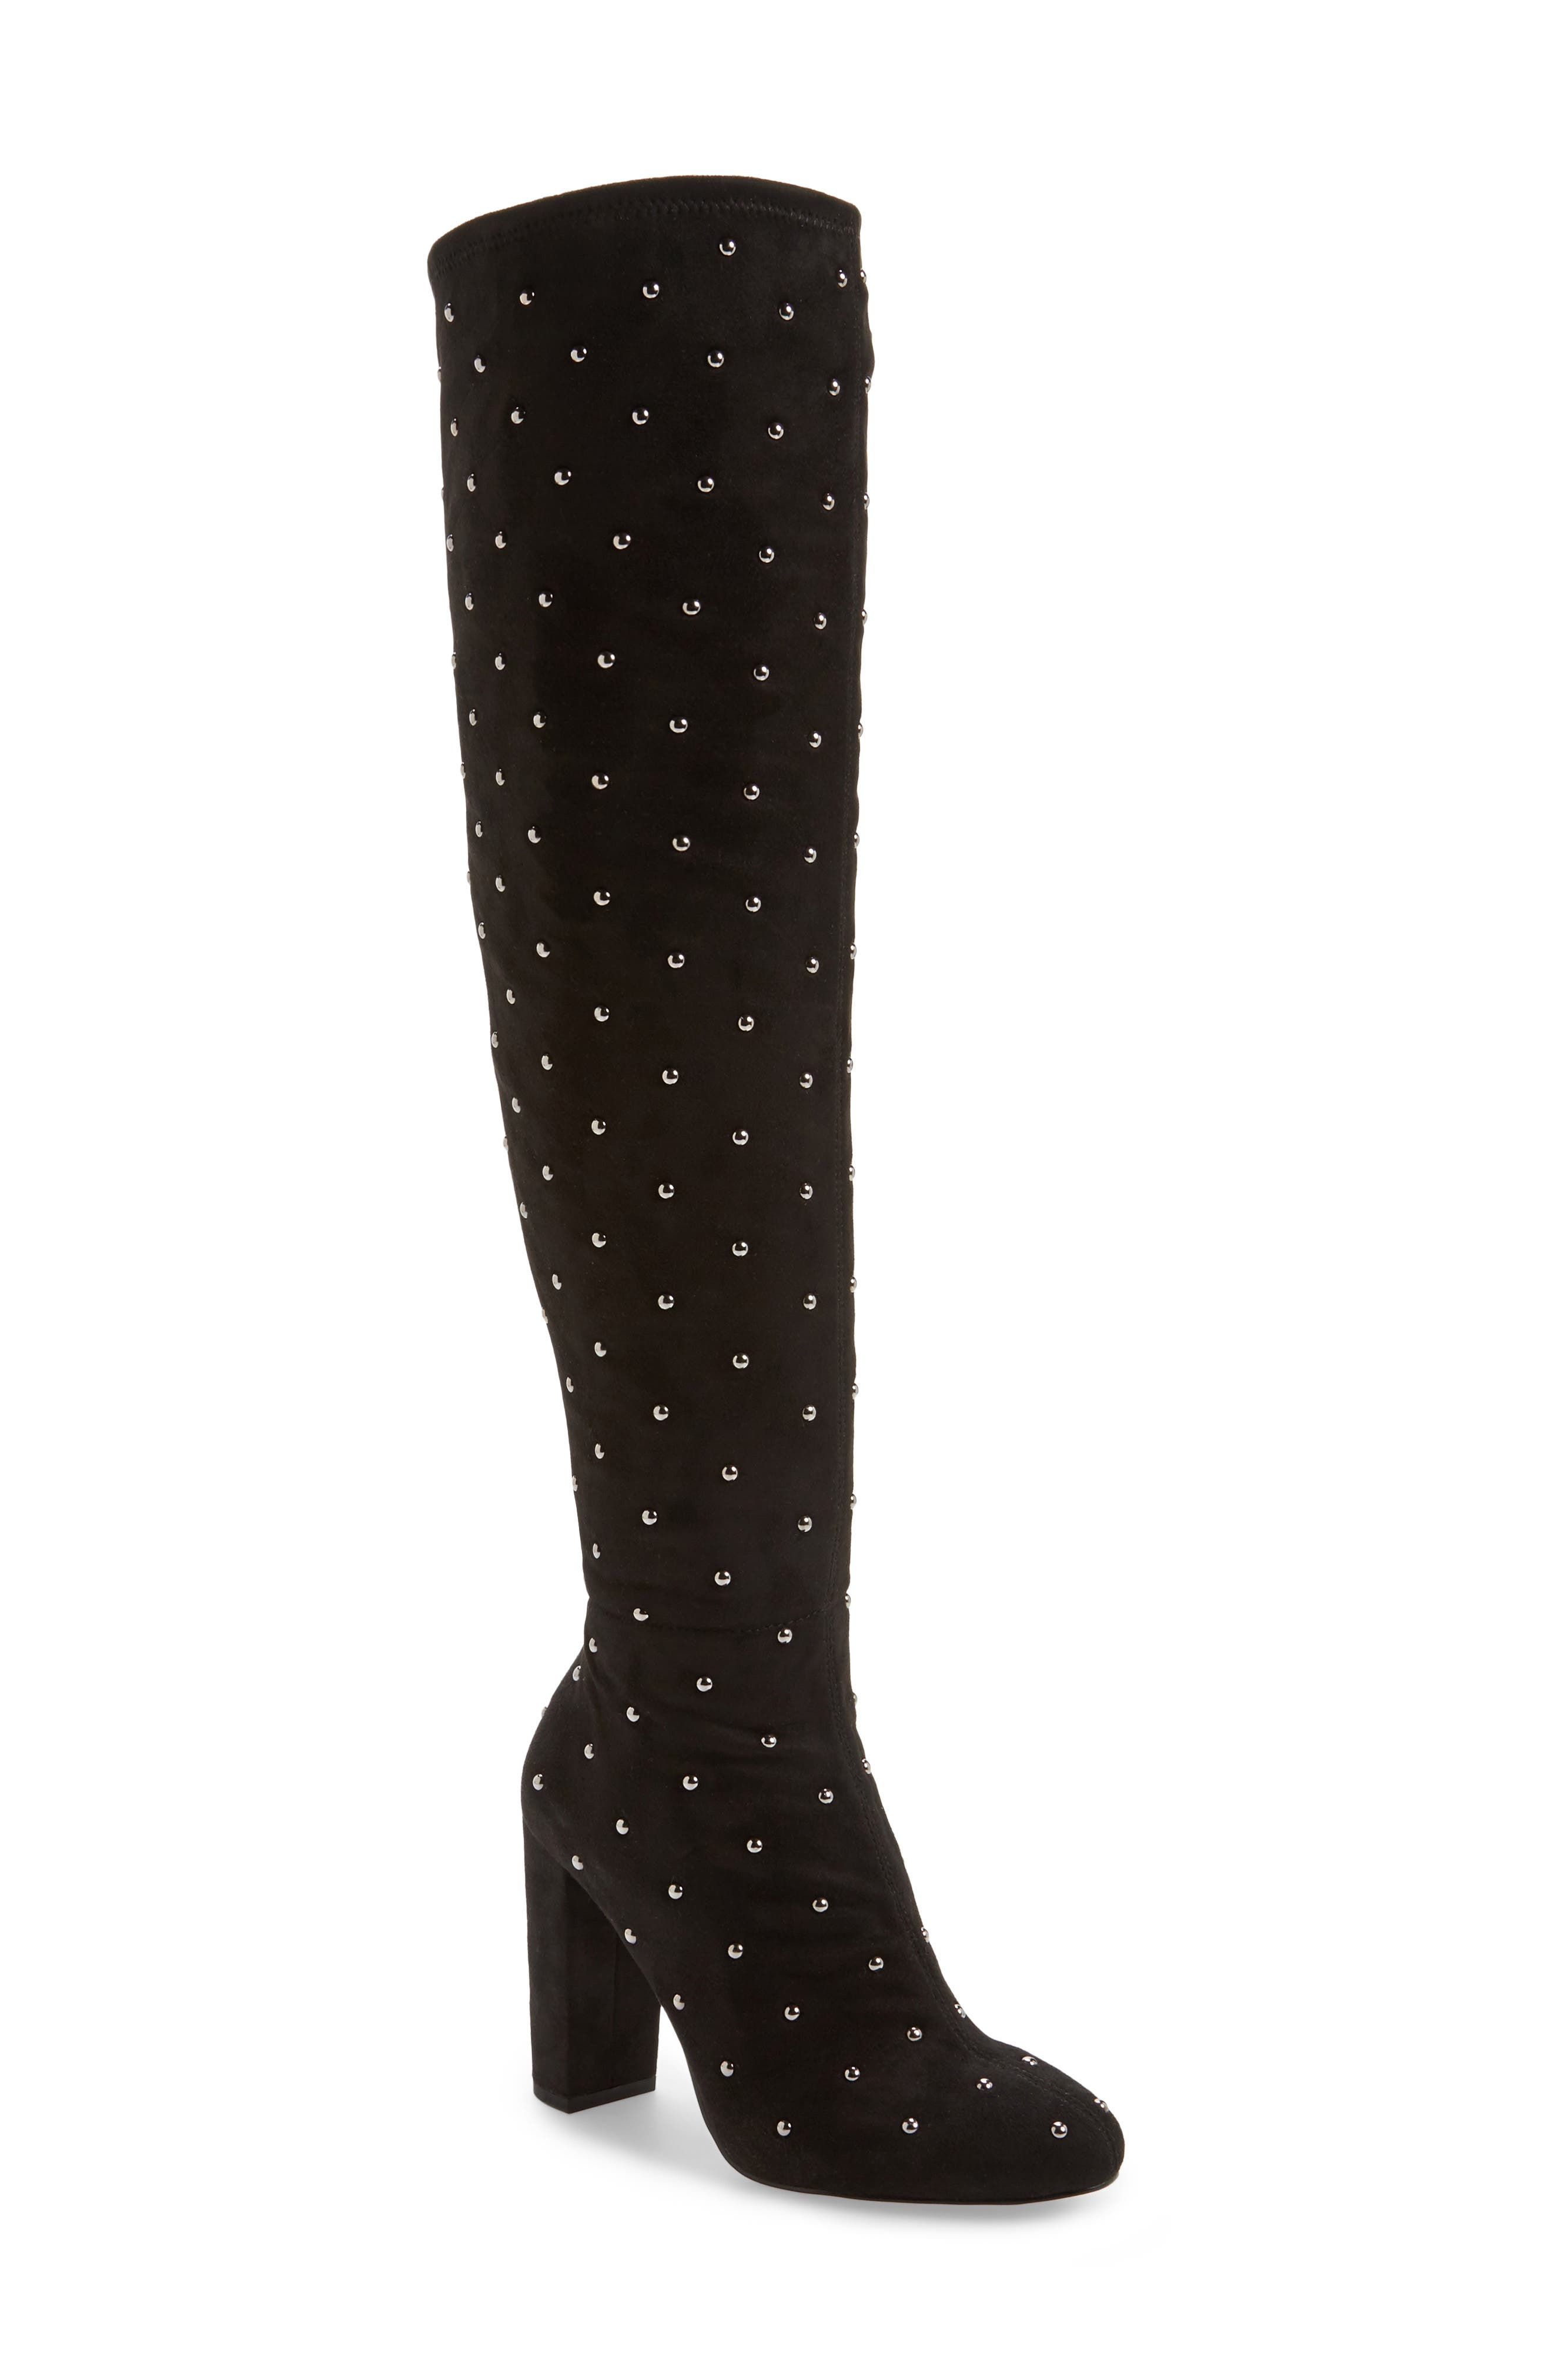 Alternate Image 1 Selected - Jessica Simpson Bressy Studded Over the Knee Boot (Women)